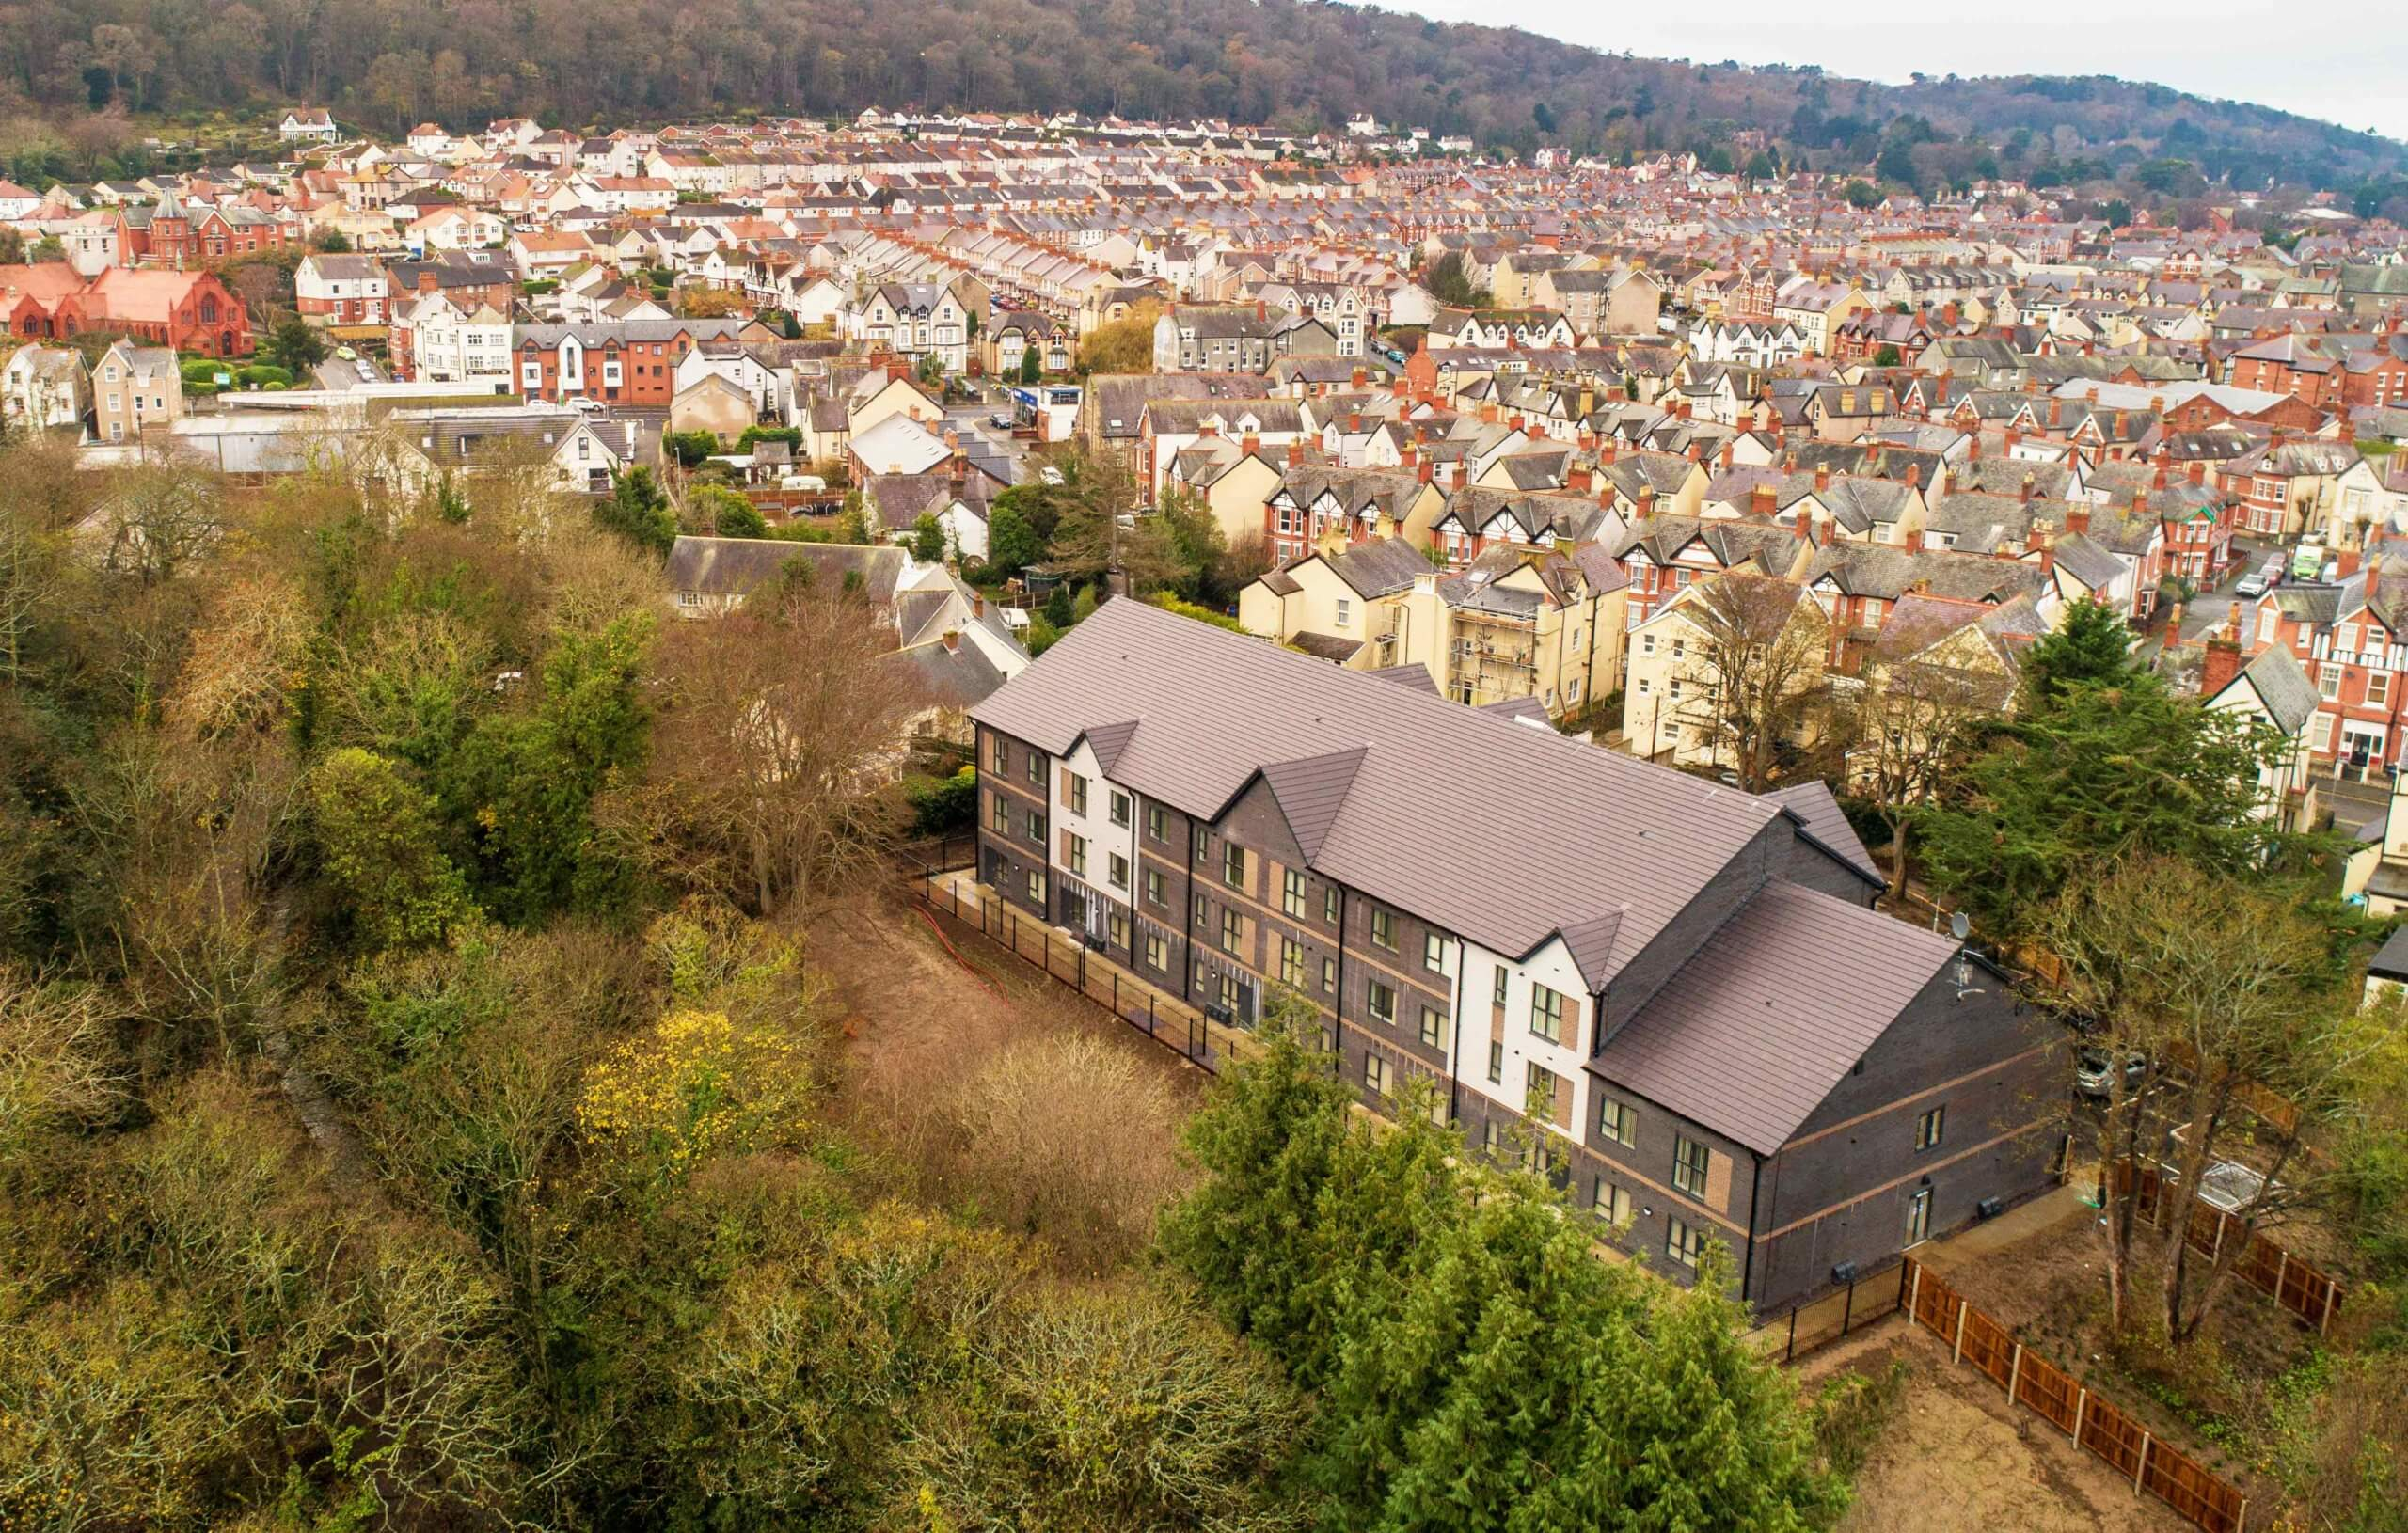 Drone exterior shot at the Edelweiss Hotel, Colwyn Bay